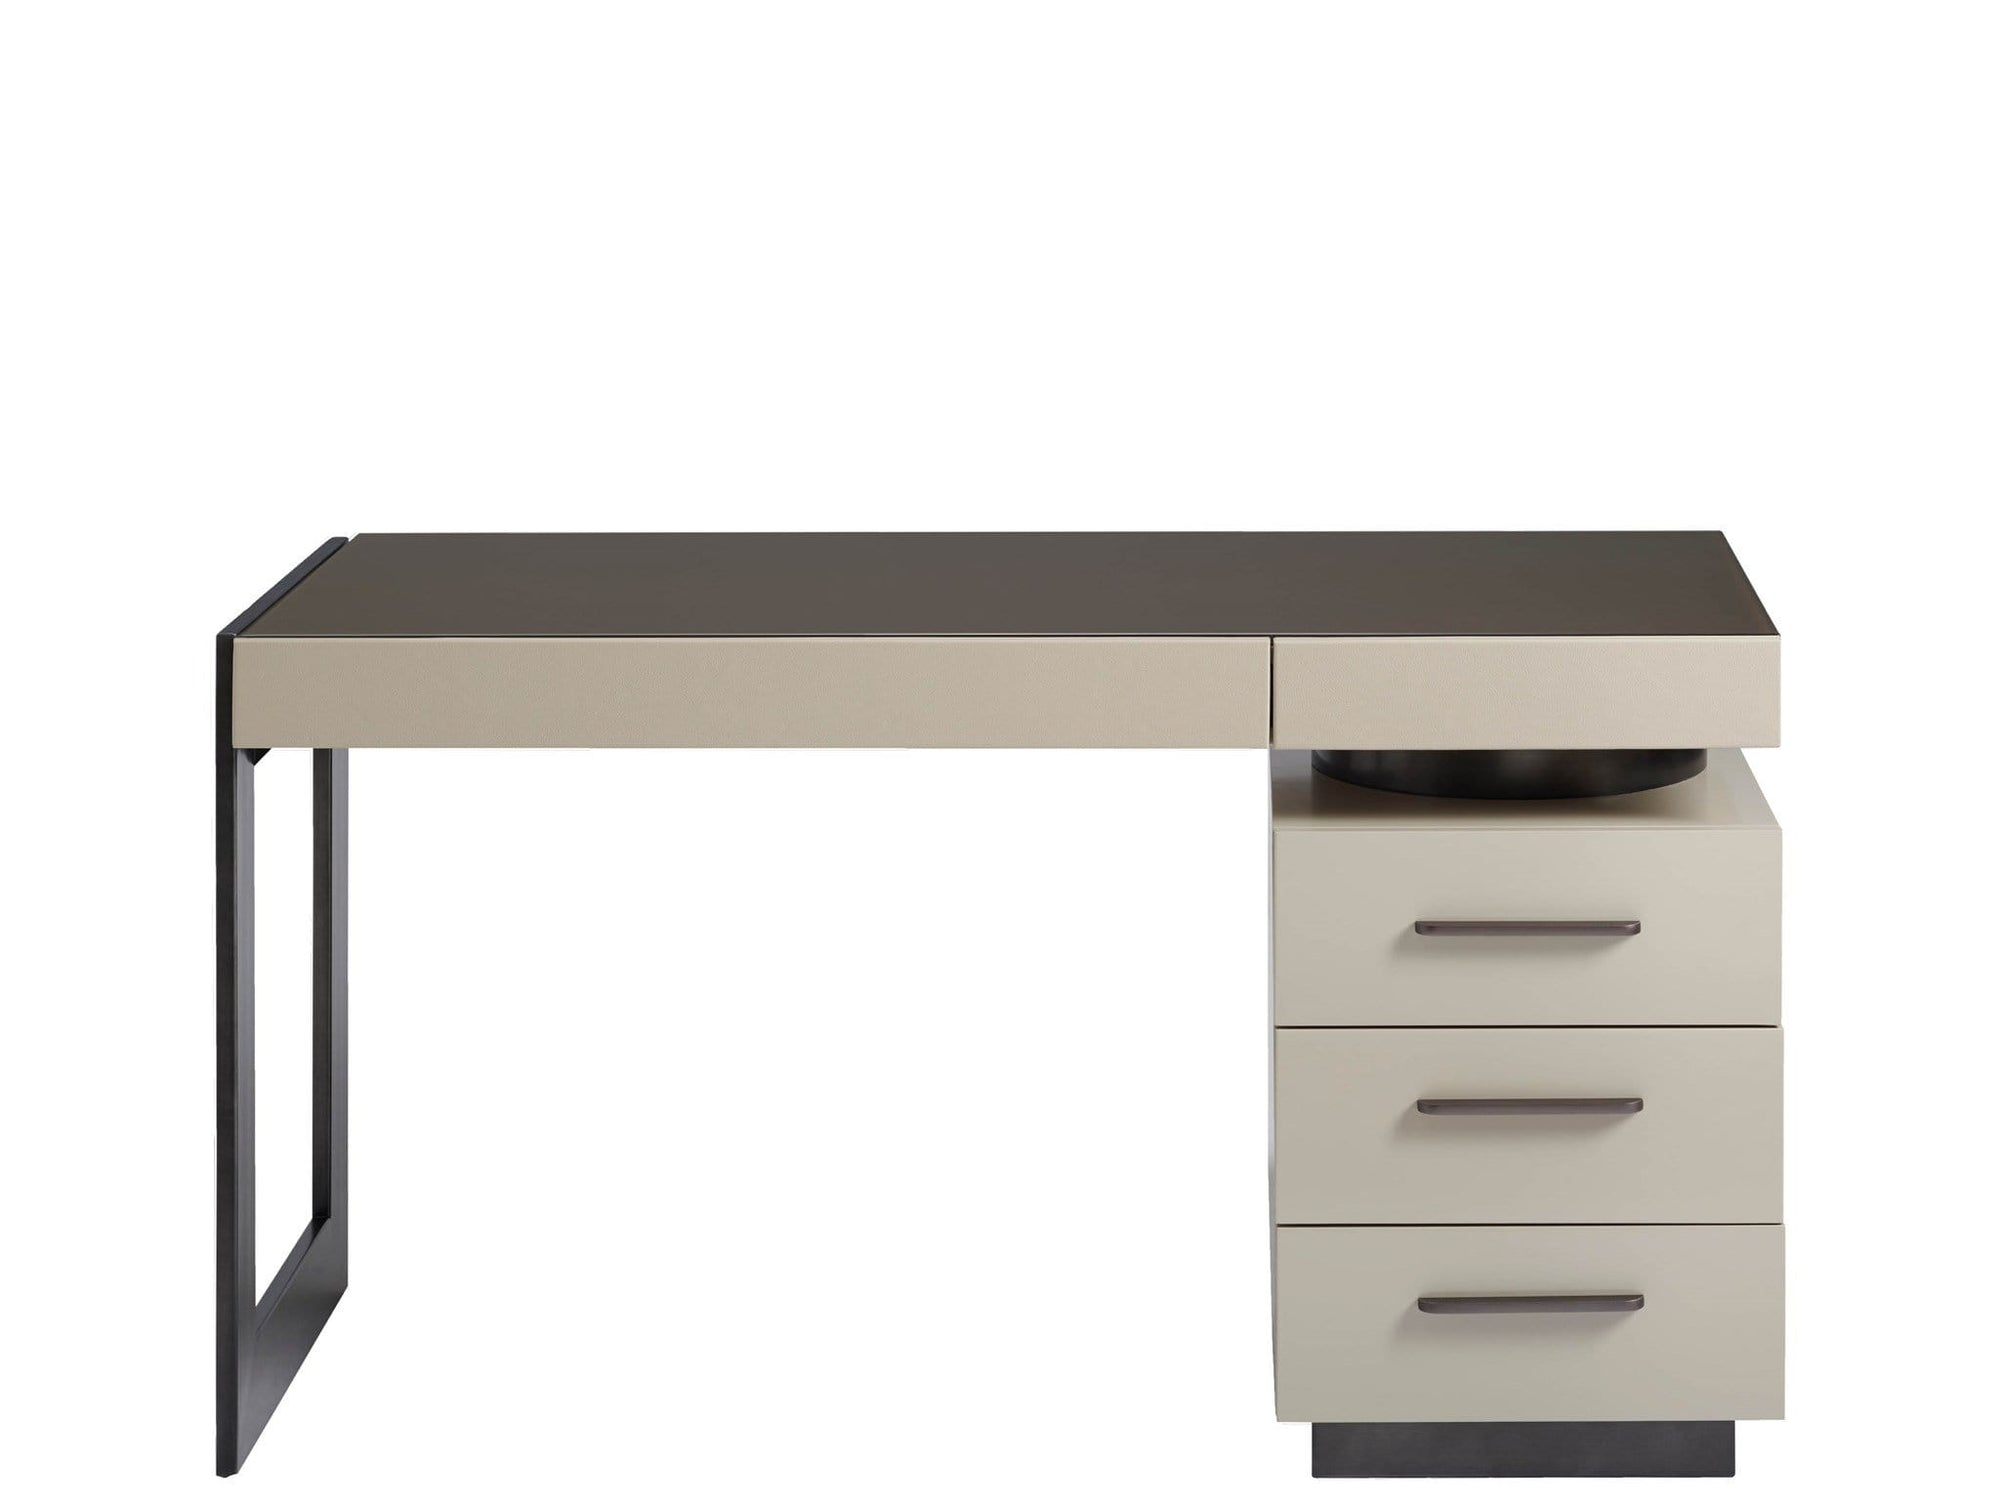 Alchemy Living Alchemy Living Urbain Amsterdam Writing Desk - Beige and Gray 807223